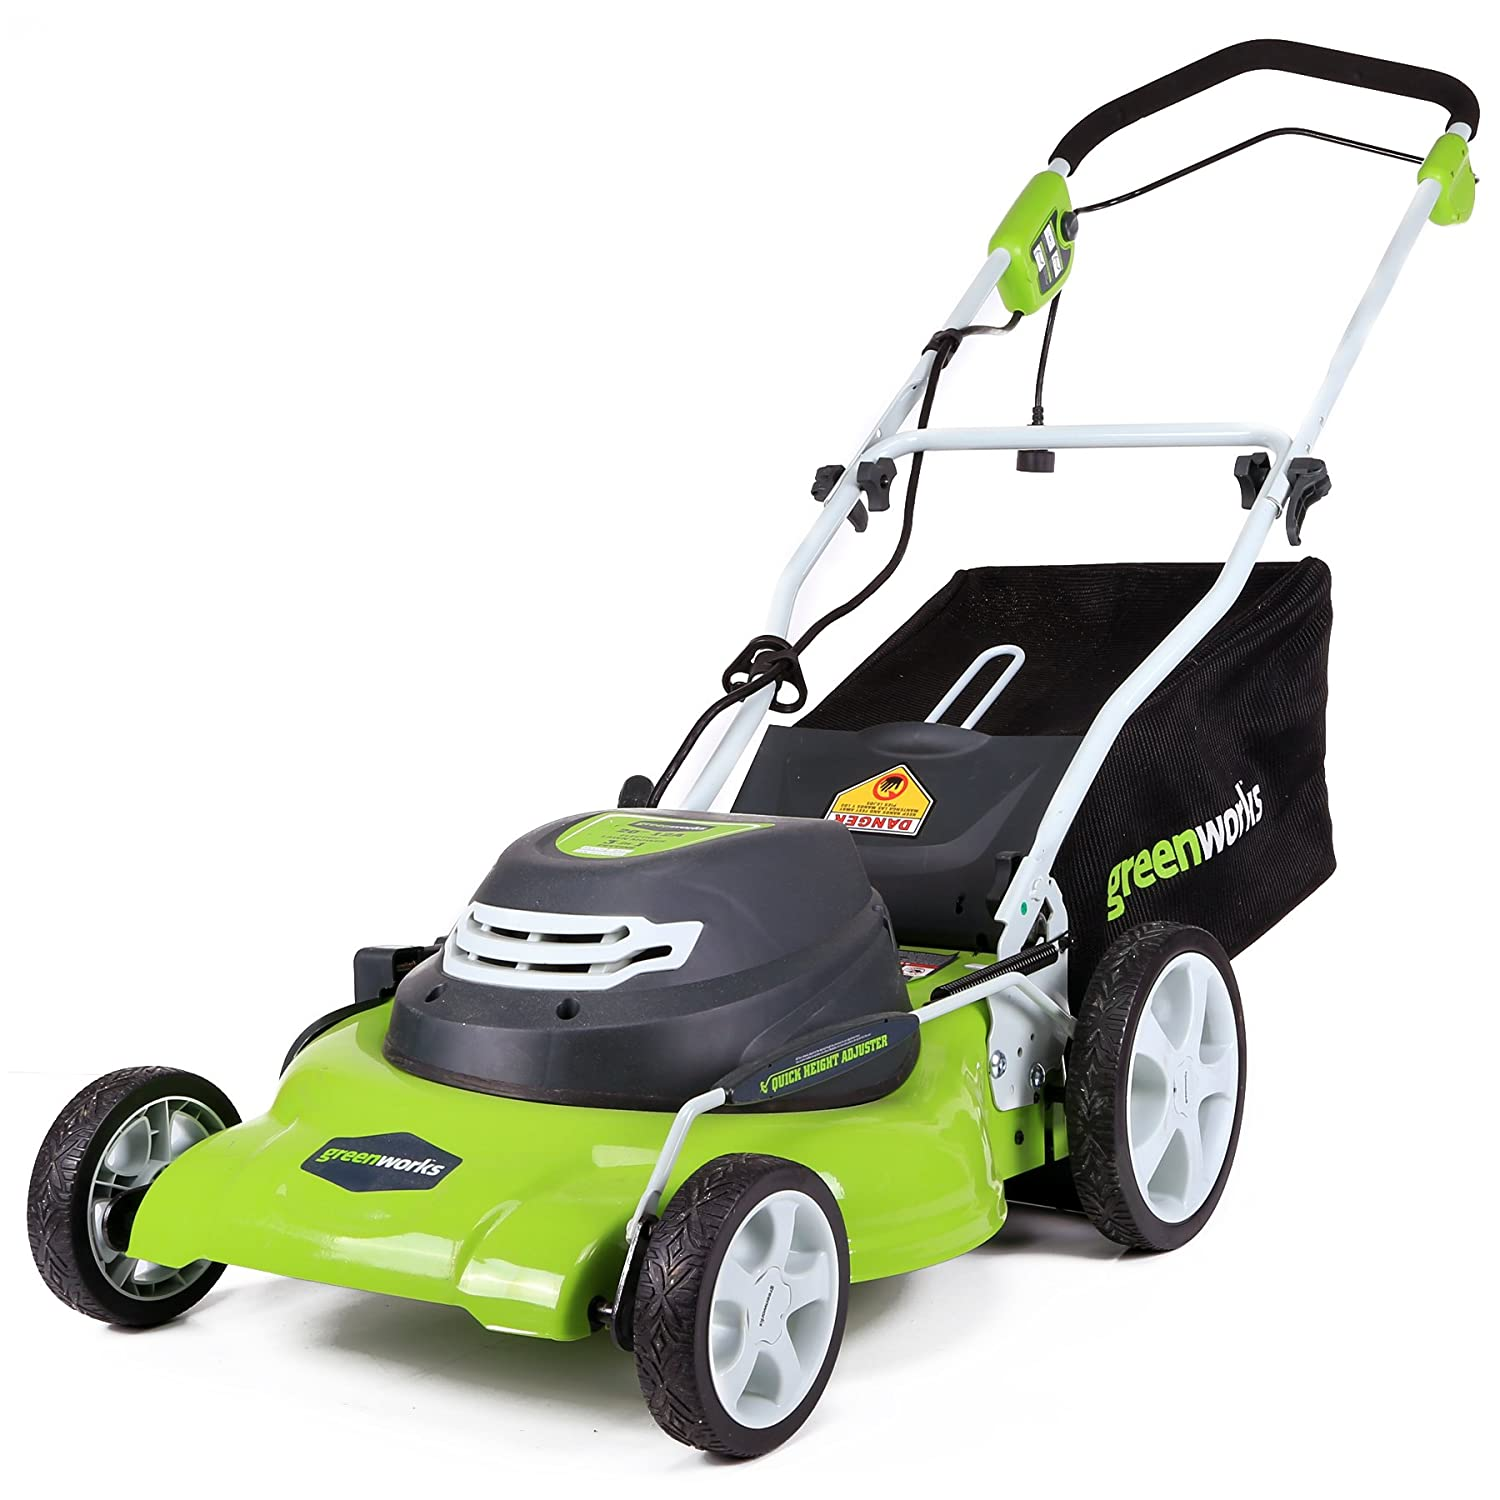 GreenWorks 25022 mower review